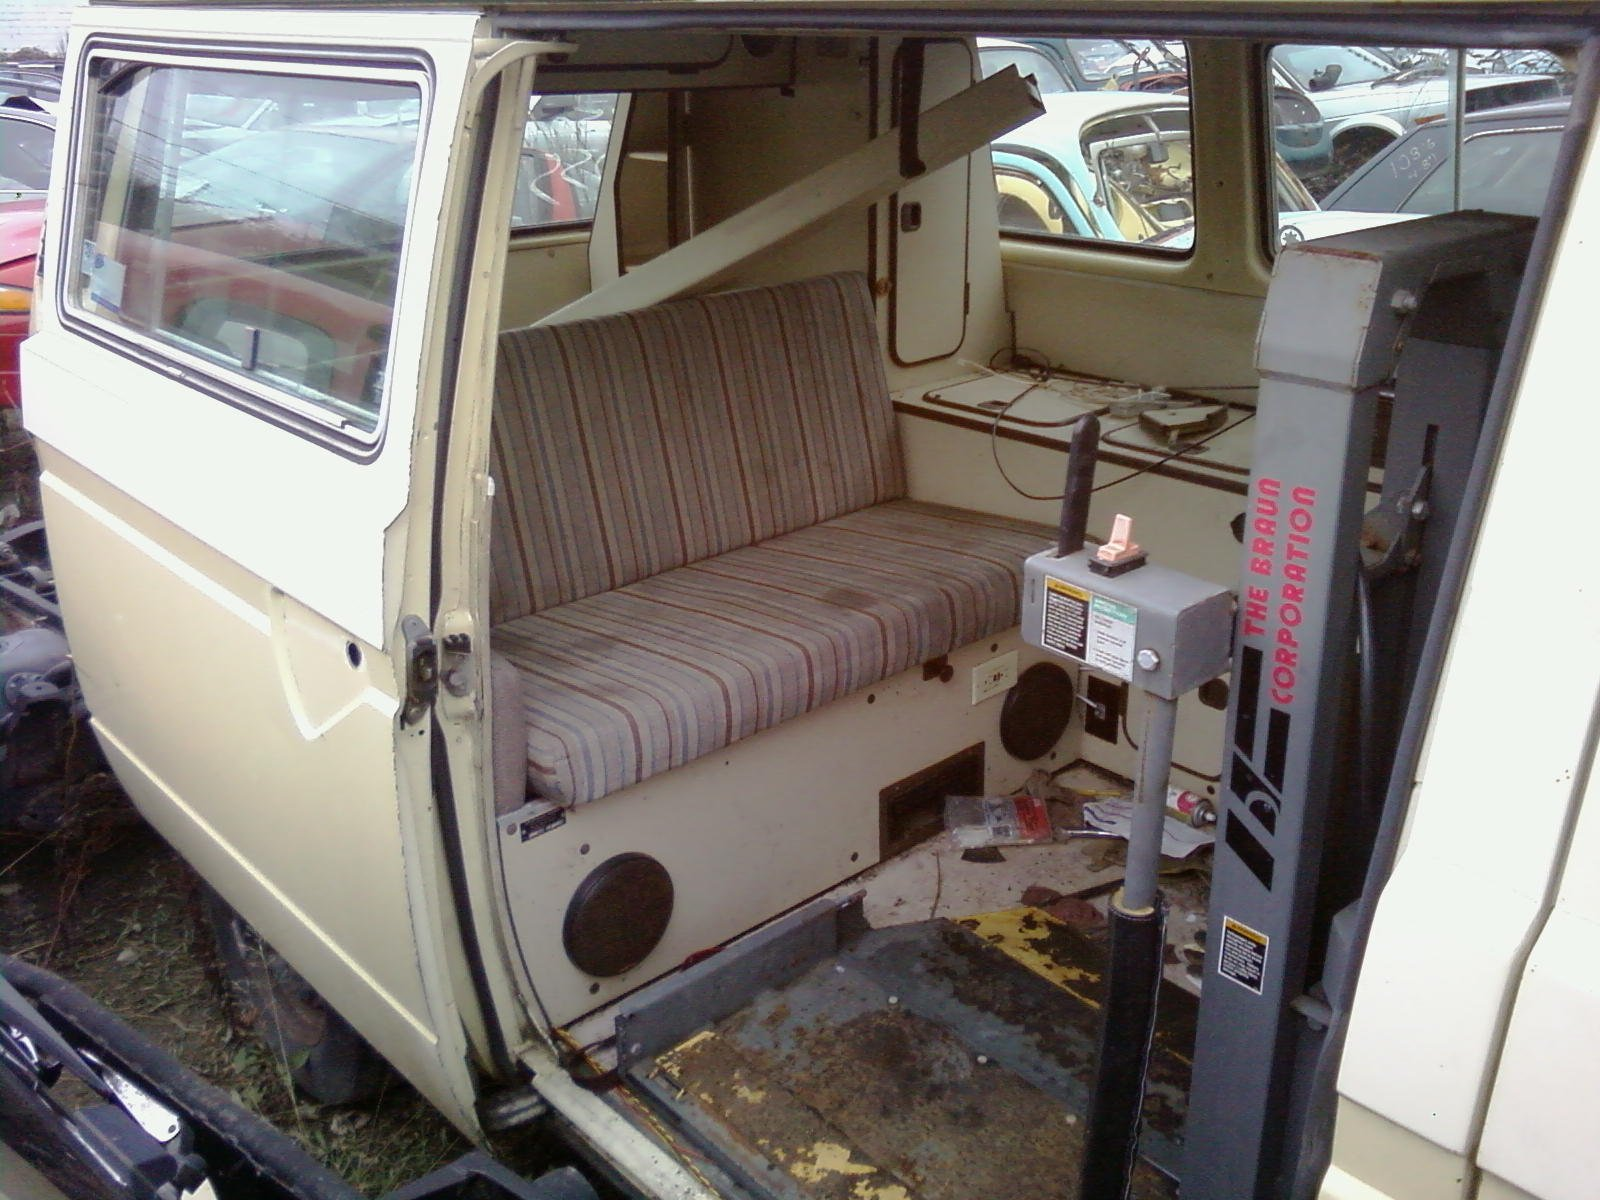 Wheelchair lifts in the Vanagon | Vanagon Hacks & Mods – VanagonHacks.com